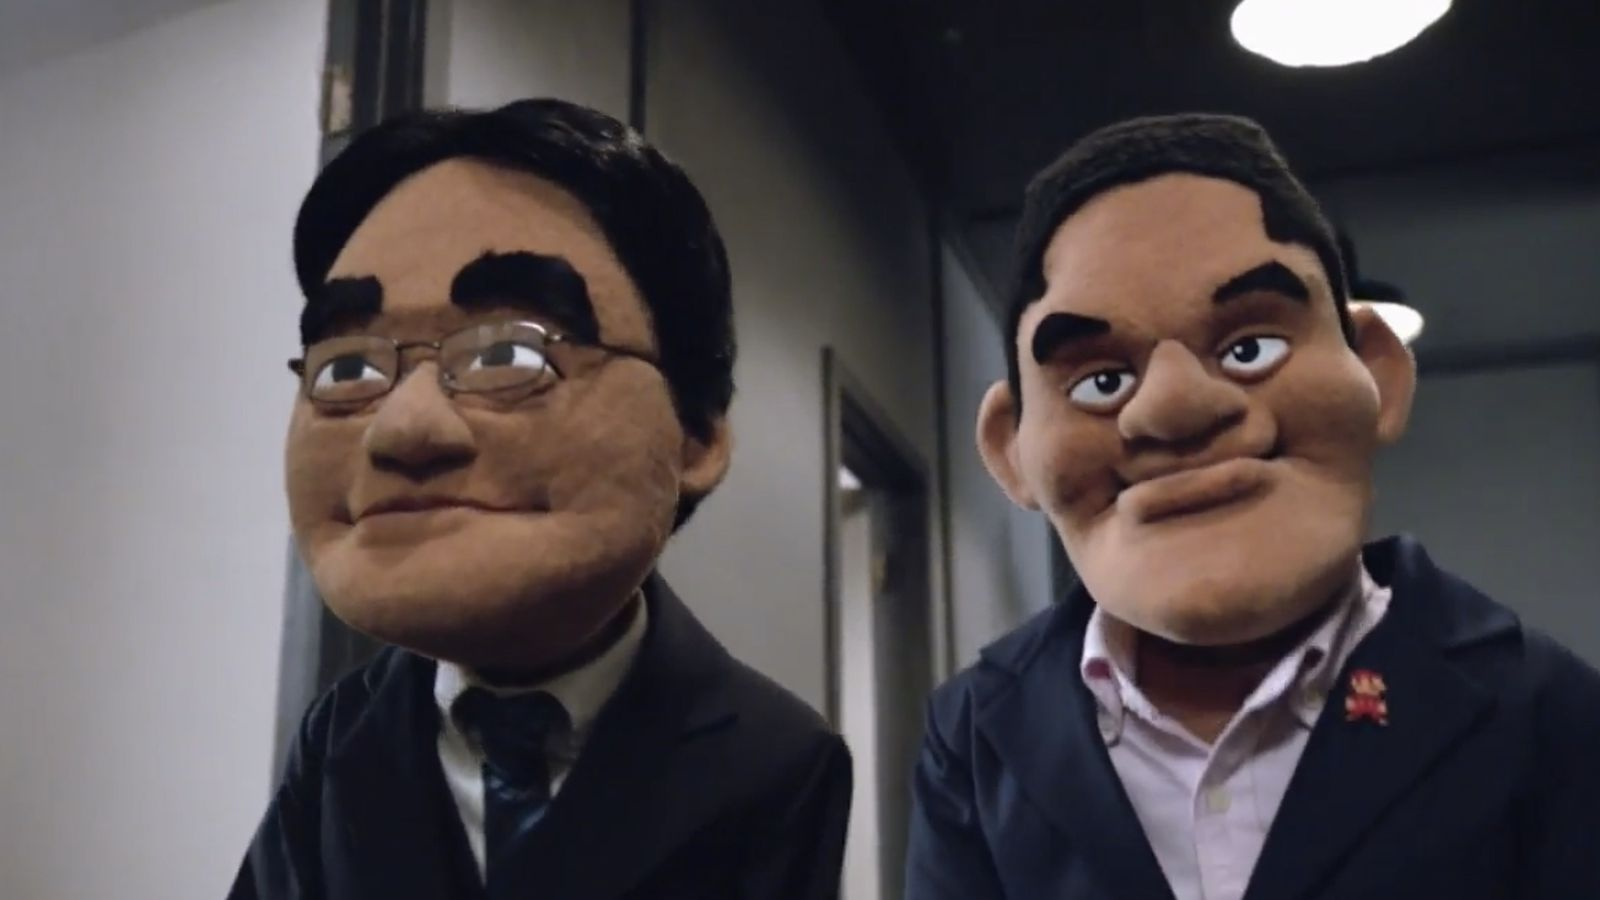 This is Iwata's last public appearance as president and CEO of Nintendo. Let that sink in. How amazing is that?